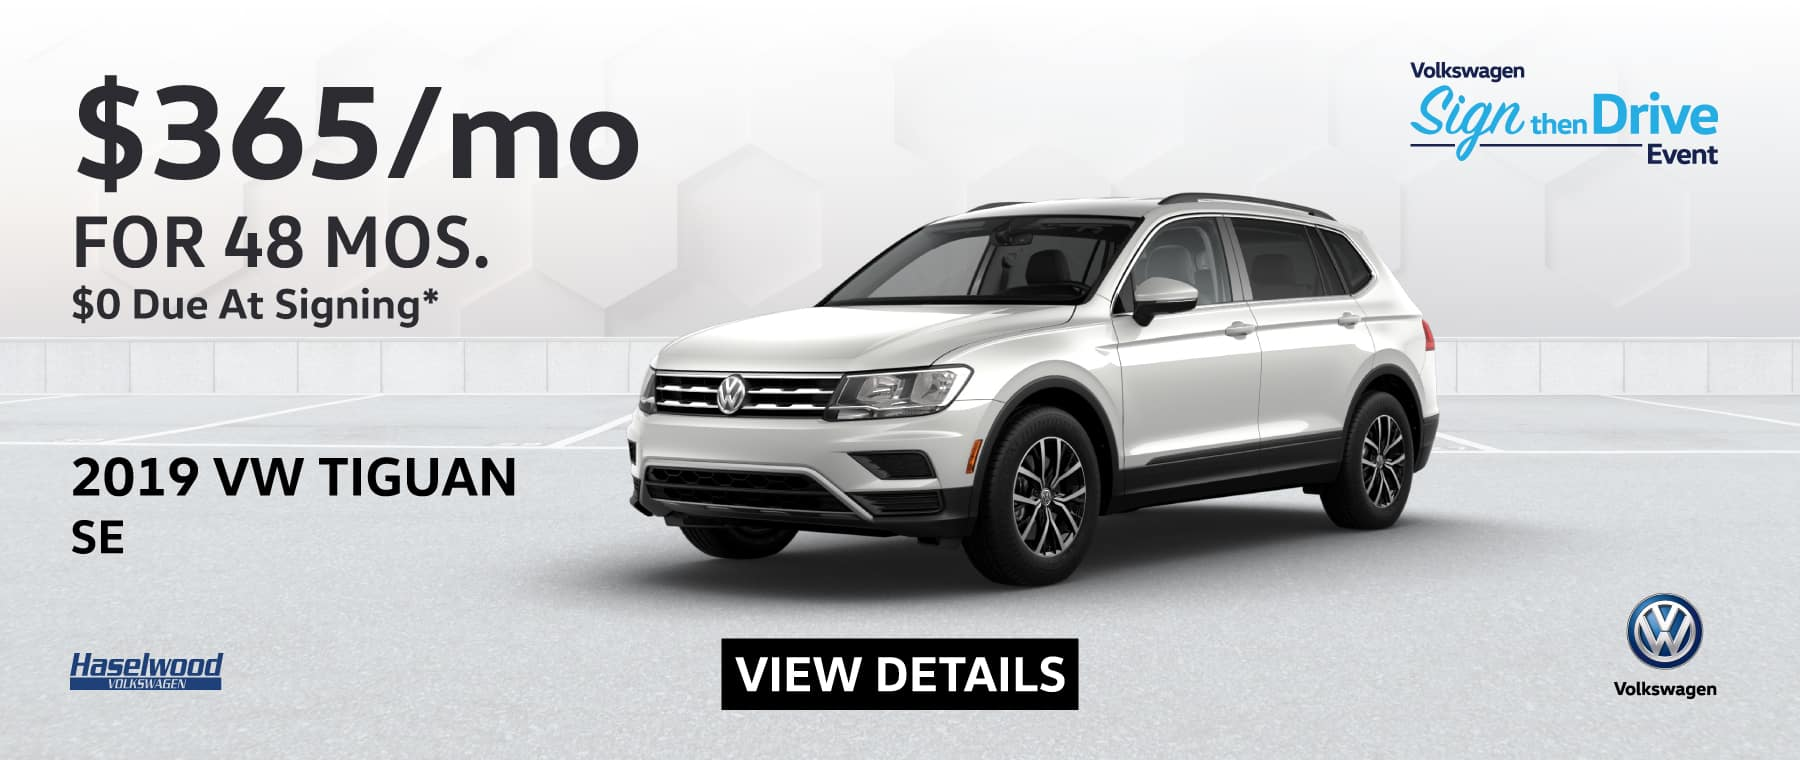 019 Volkswagen Tiguan SE (featured vehicle)  $365/mo. for 48 months $0 Due at Signing    * Offer valid on 2019 Volkswagen Tiguan SE. $365 per mo. for 48 months. Lease with $0 due at signing; includes a $595 acquisition fee, lease through Volkswagen Credit. No security deposit required. Valid on VIN: 3VV2B7AX2KM197116.For highly qualified customers on approved top tier credit through Volkswagen Credit. Lessee responsible for maintenance, excessive wear/tear and 20¢/mi over 10K mi/yr. Excludes state and local taxes, tags, registration and title, insurance and dealer charges. Subject to credit approval. 48 monthly payments required. Monthly lease payment based on MSRP of $29,835 and destination charges less a suggested dealer contribution resulting in a Gross capitalized cost of $29,159. Cap cost reduction: $0. A negotiable dealer documentary service fee of up to $150 may be added to the sale price or capitalized cost. See dealer for complete details and restrictions. 6 years/72,000 miles (whichever occurs first). New Vehicle Limited Warranty on MY2018 and newer VW vehicles, excluding e-Golf. See owner's literature or dealer for warranty exclusions and limitations. Exp. 12/1/2019.